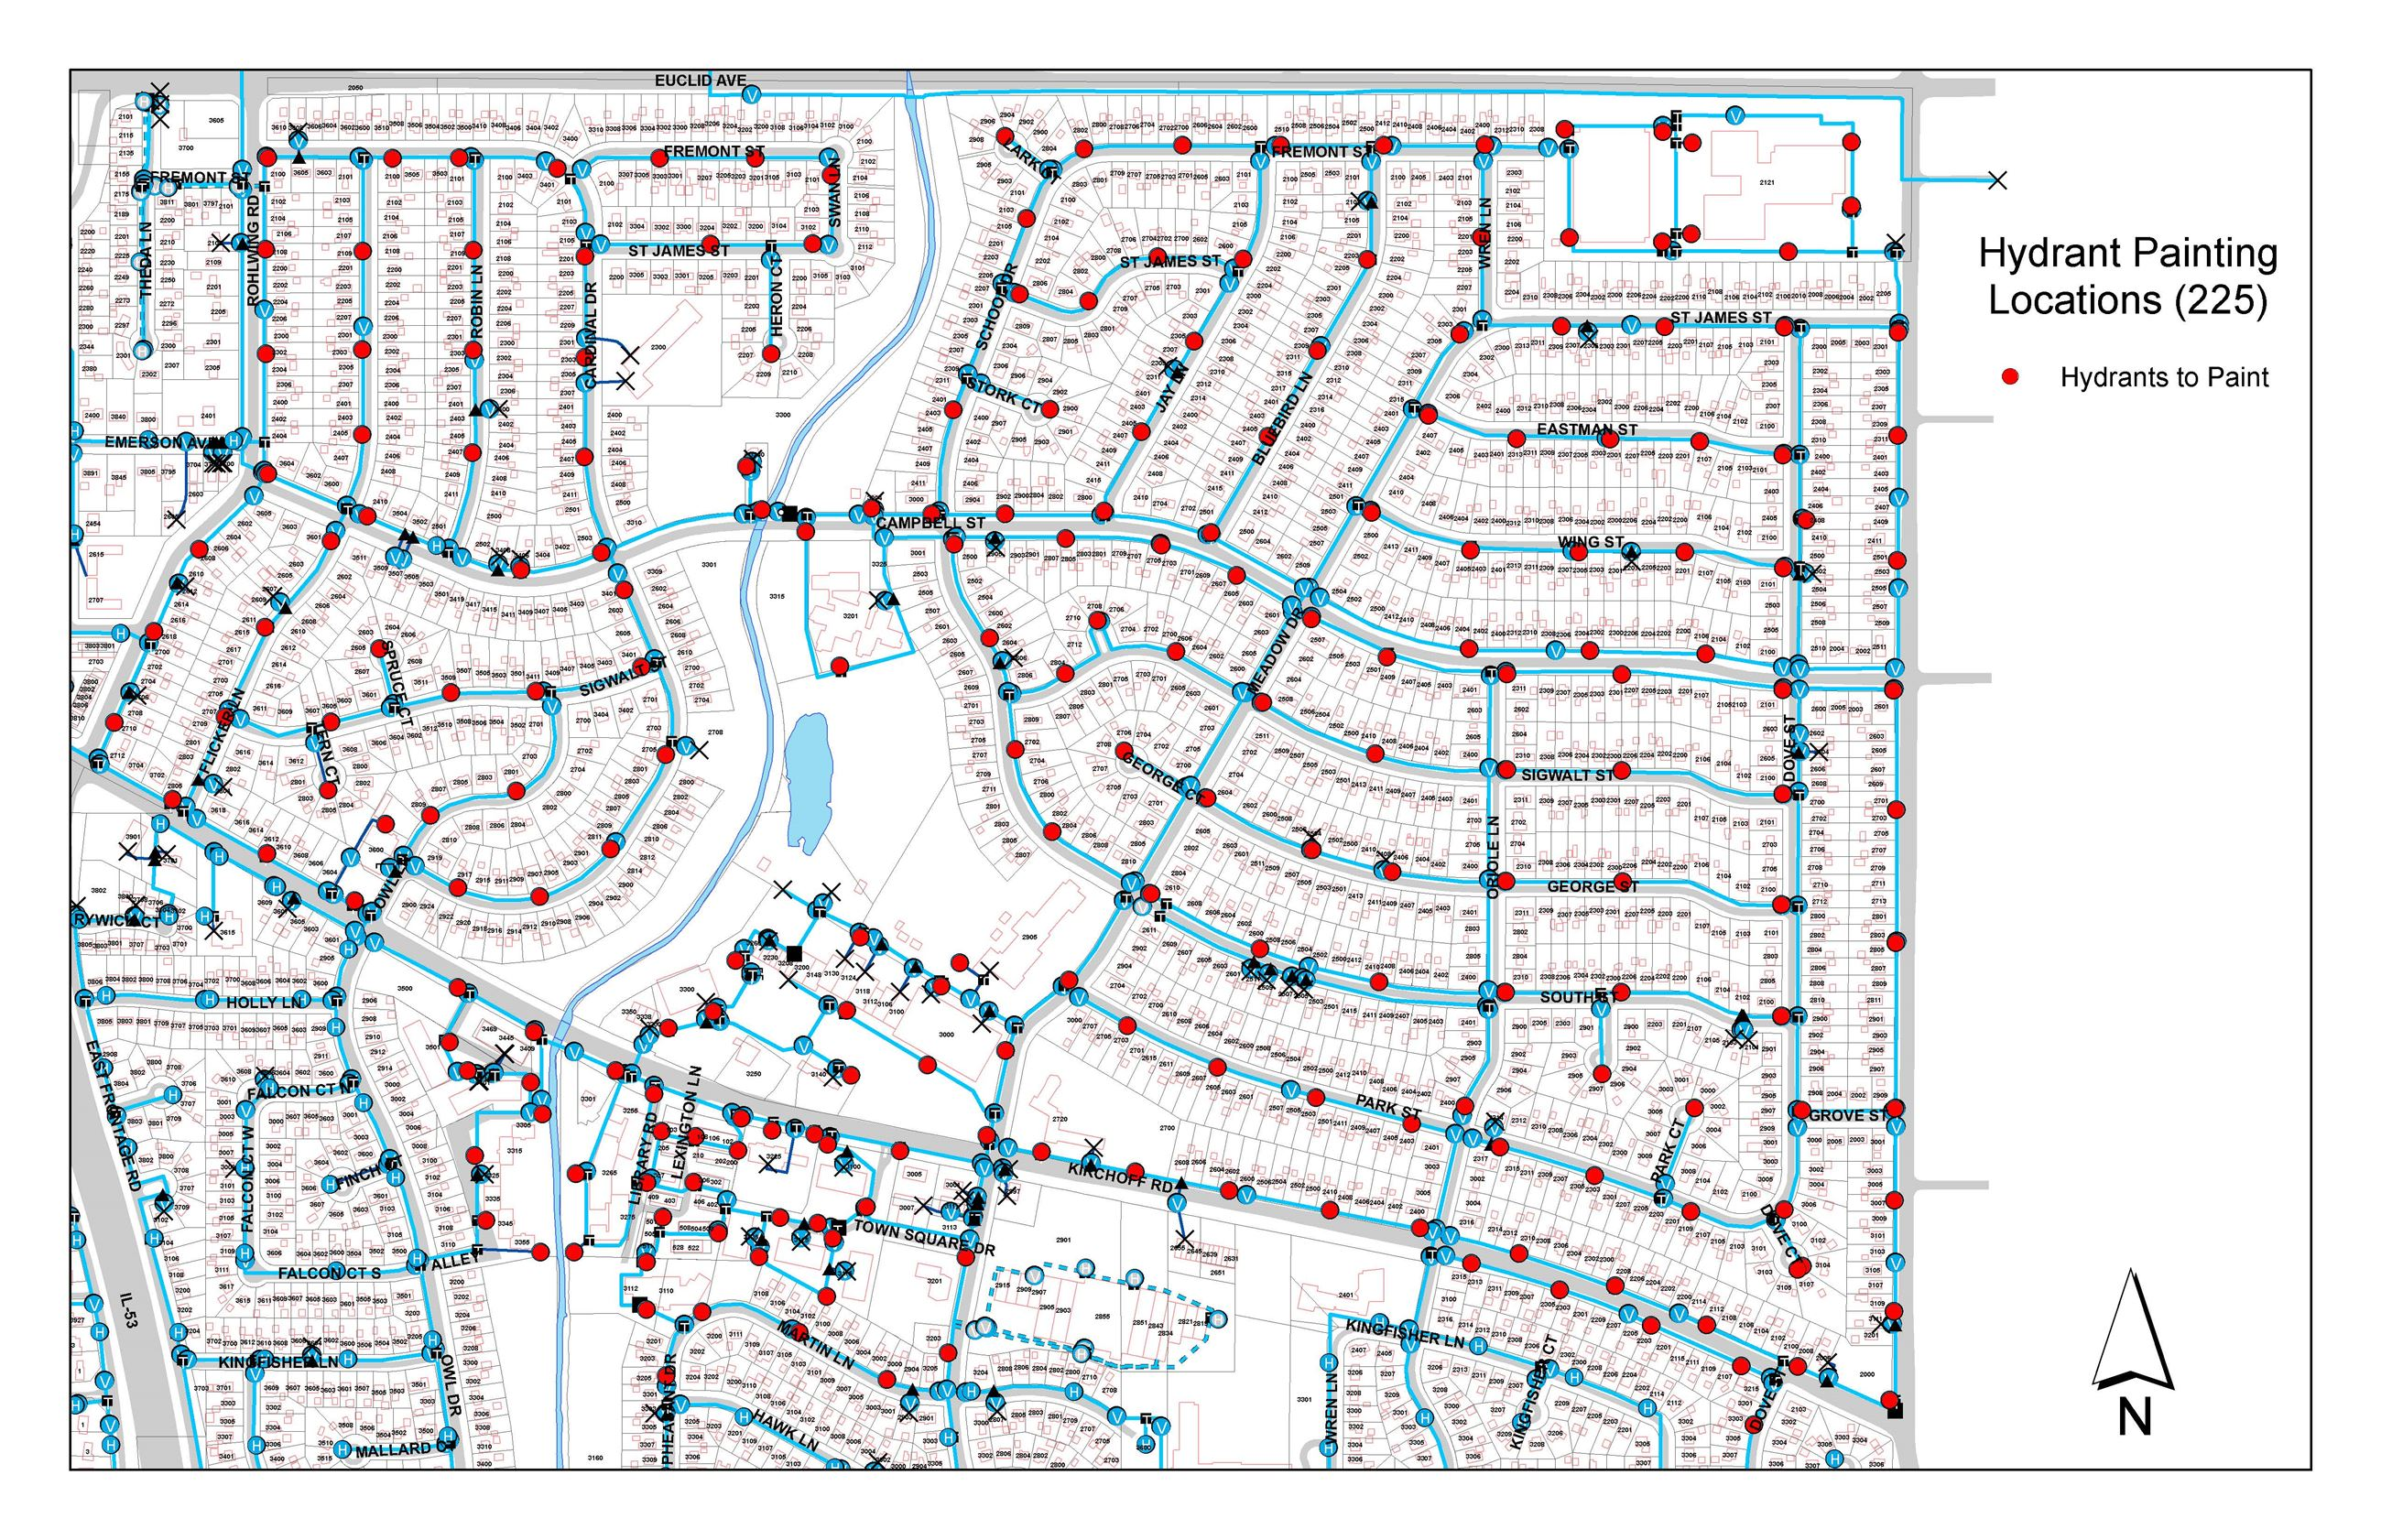 Hydrant Painting Map